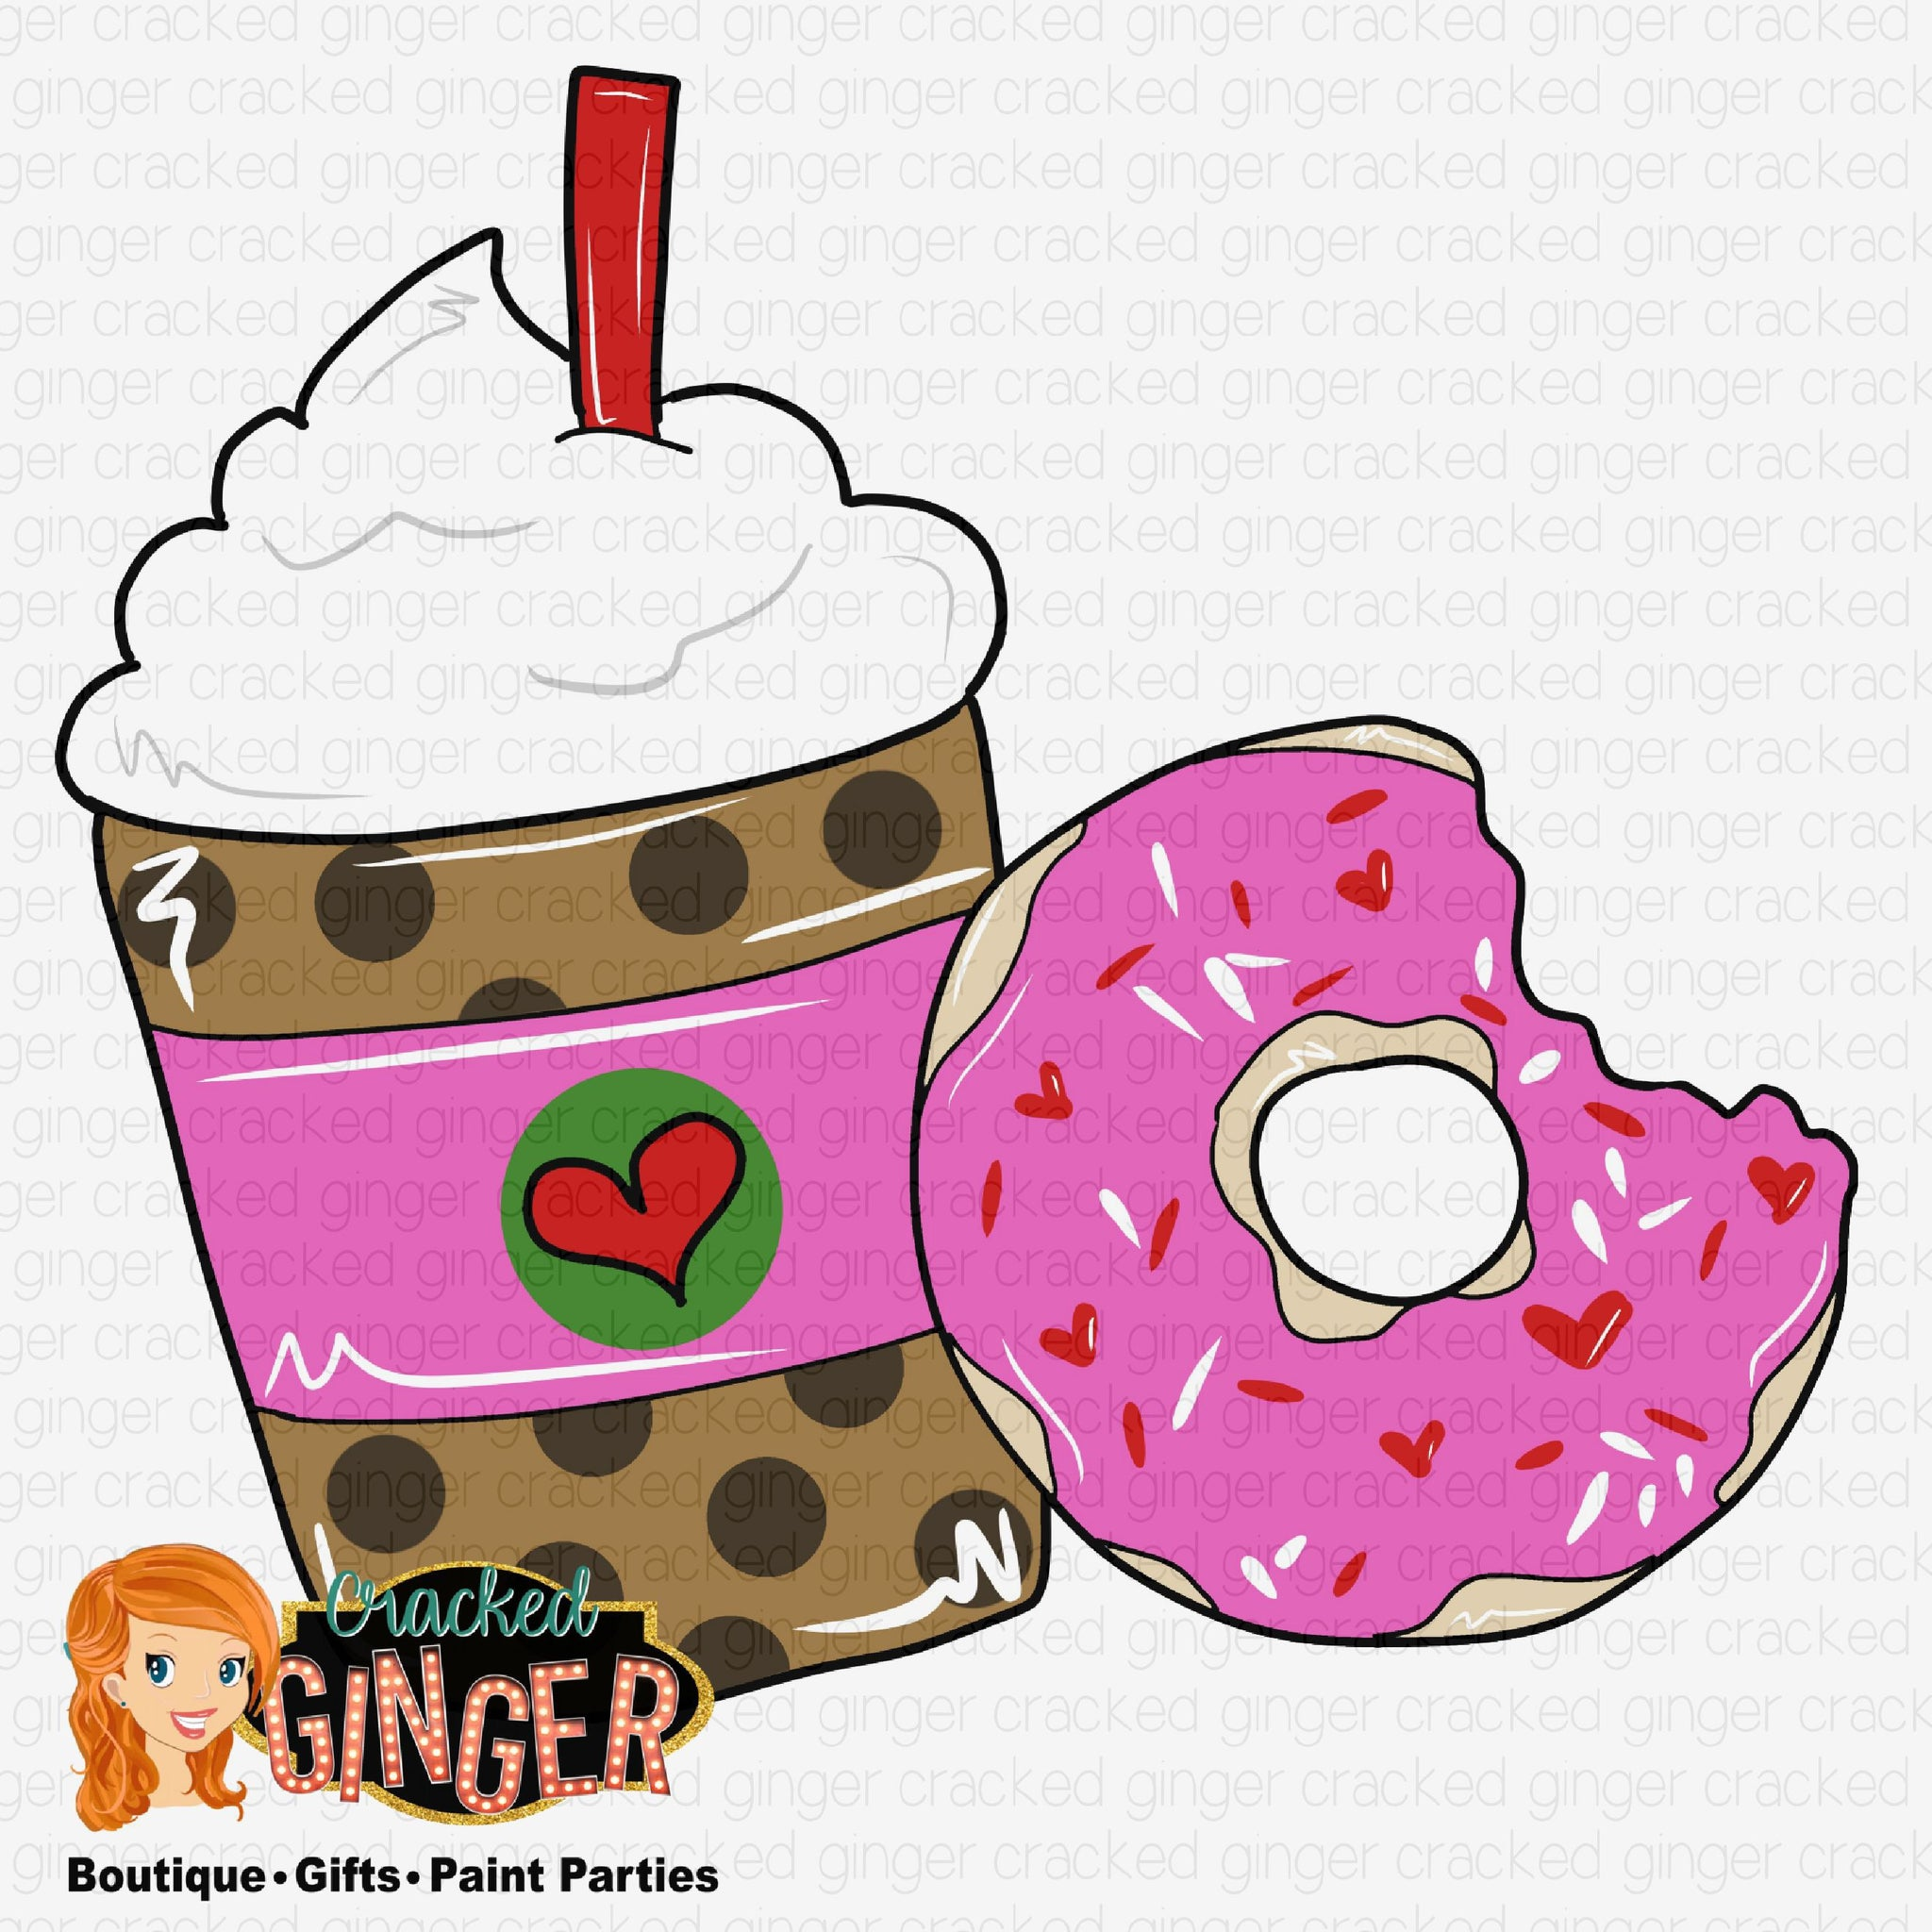 Donut and Frappe